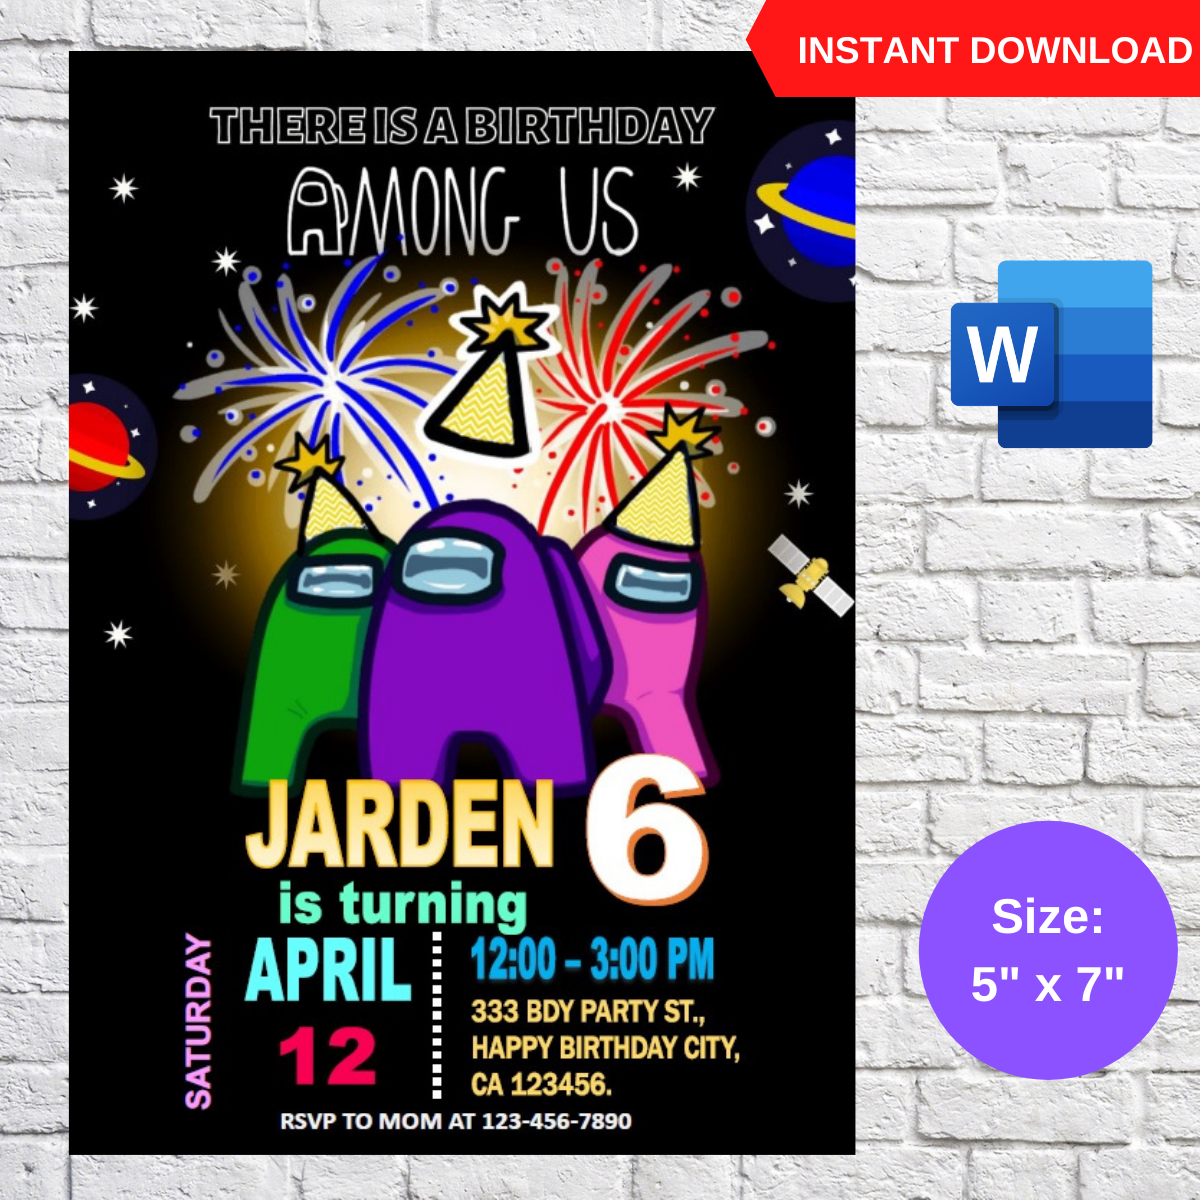 Among Us Birthday Party Invitation Template